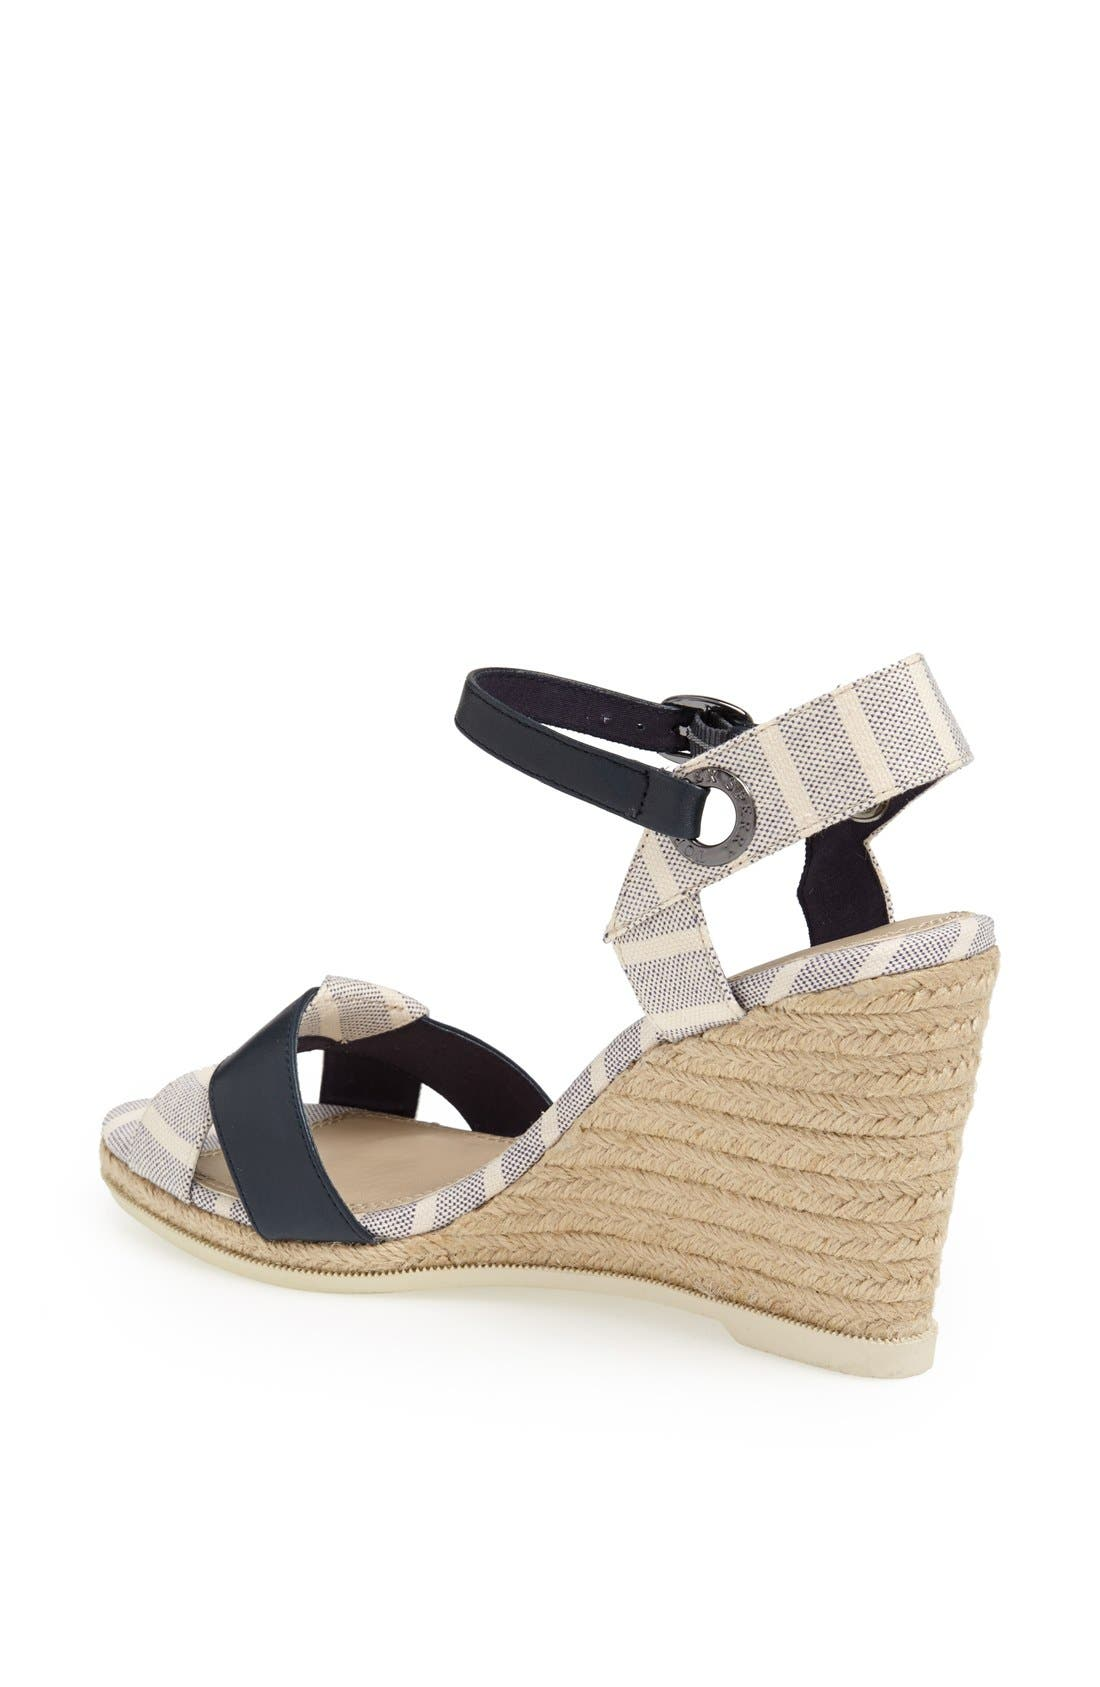 Alternate Image 2  - Sperry 'Saylor' Sandal (Women)